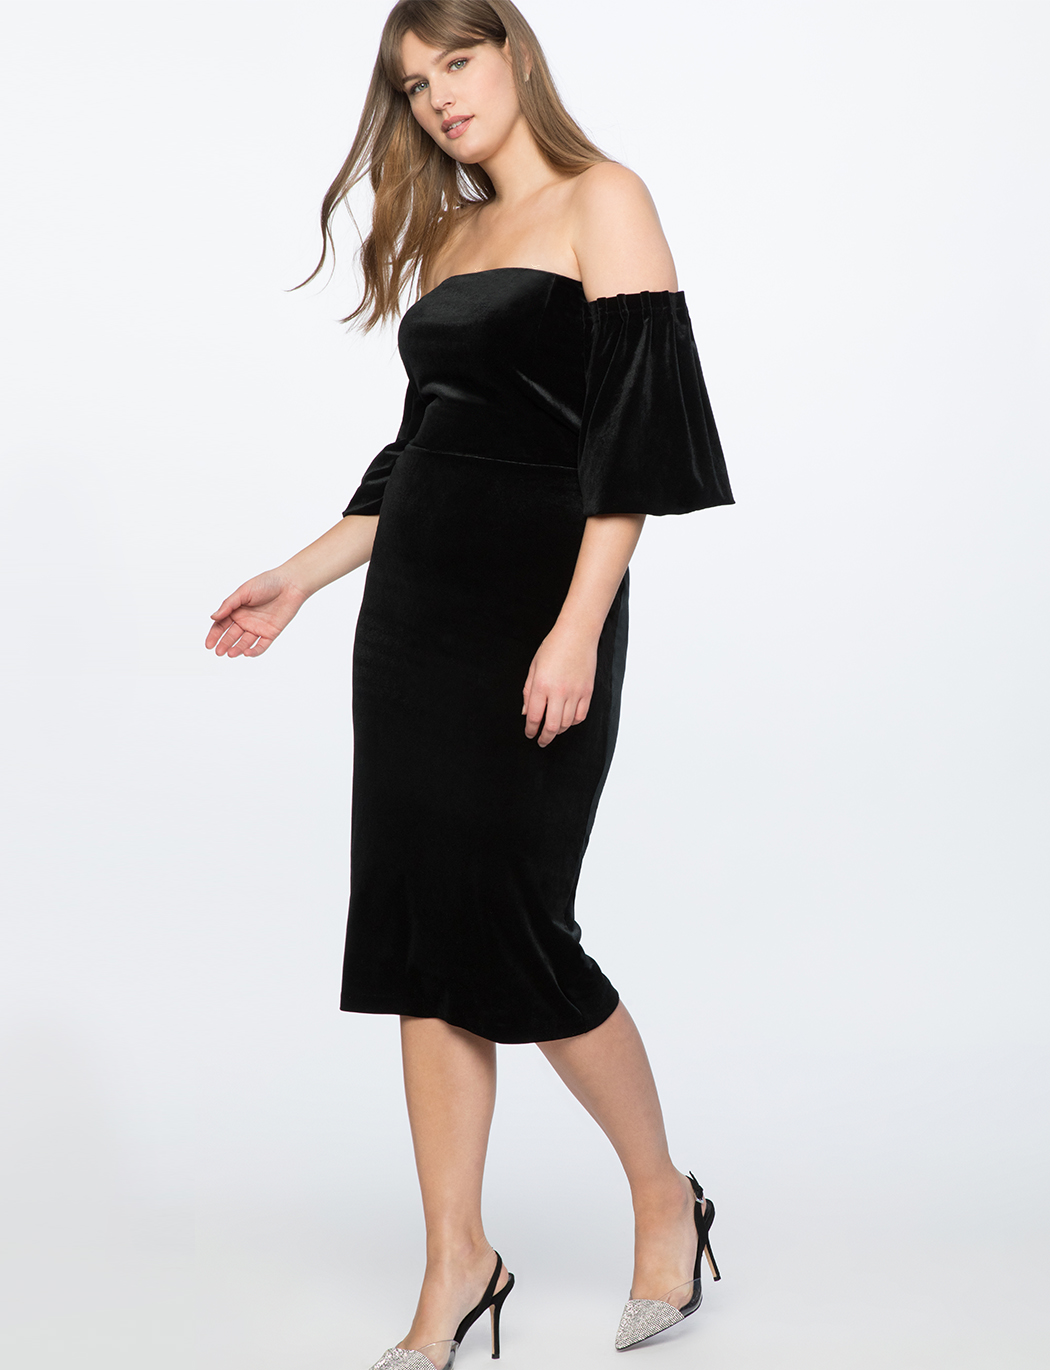 Strapless Velvet Dress with Full Sleeves 13